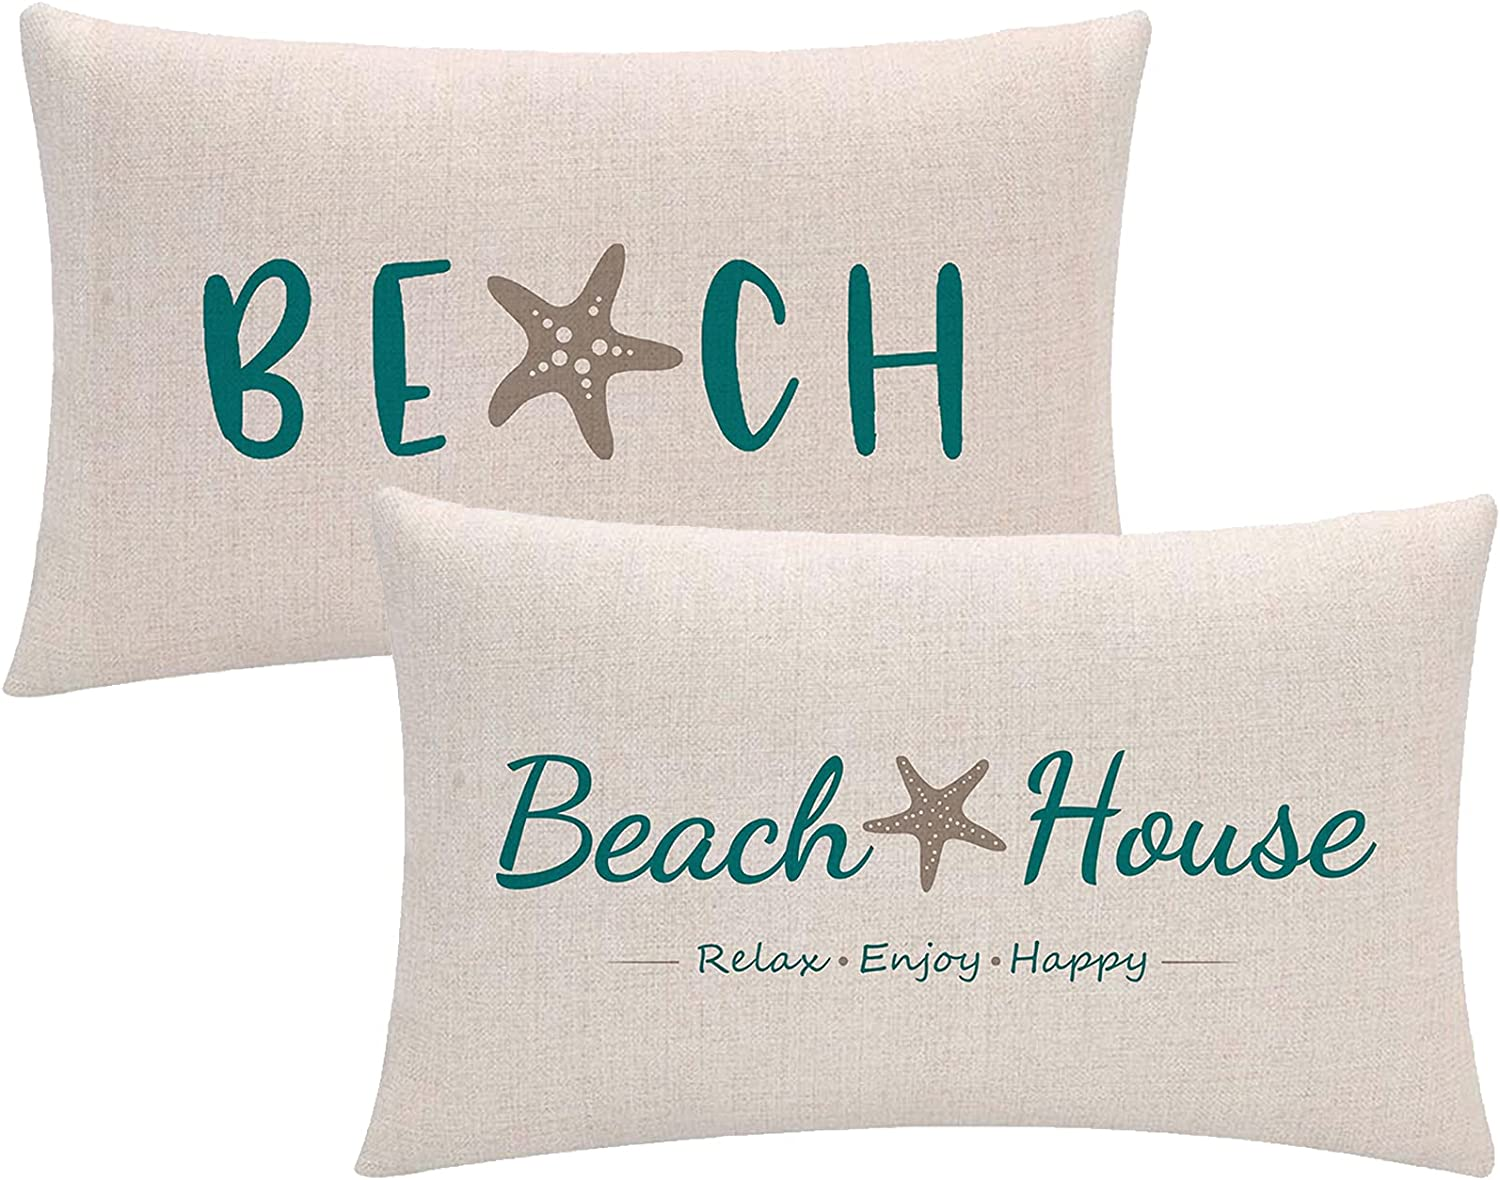 ULOVE LOVE YOURSELF Beach House Decor Throw Pillow Cover with Starfish Cushion Covers Summer Holiday Beach Decorative Lumber Pillowcases 12x20 inch,Set of 2